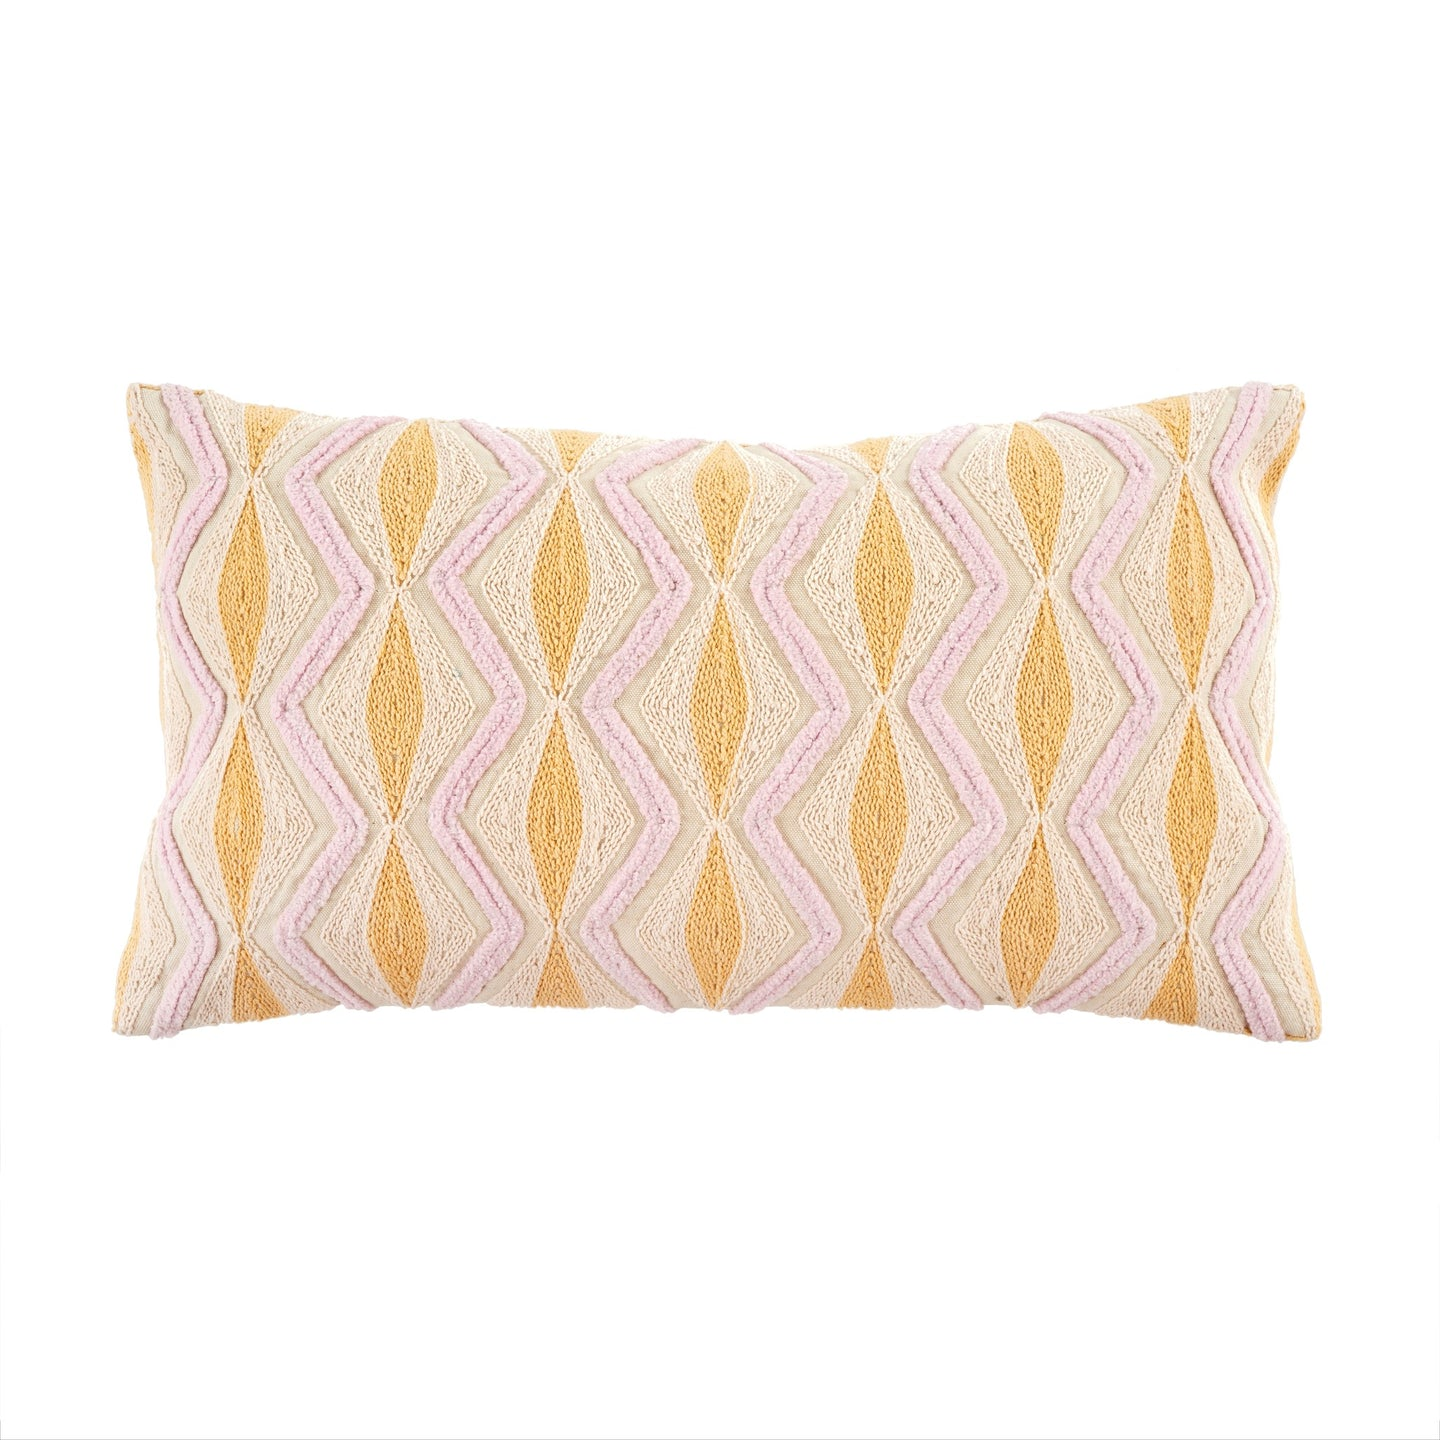 Woven Tropez Pillow - Pillows - PICNIC